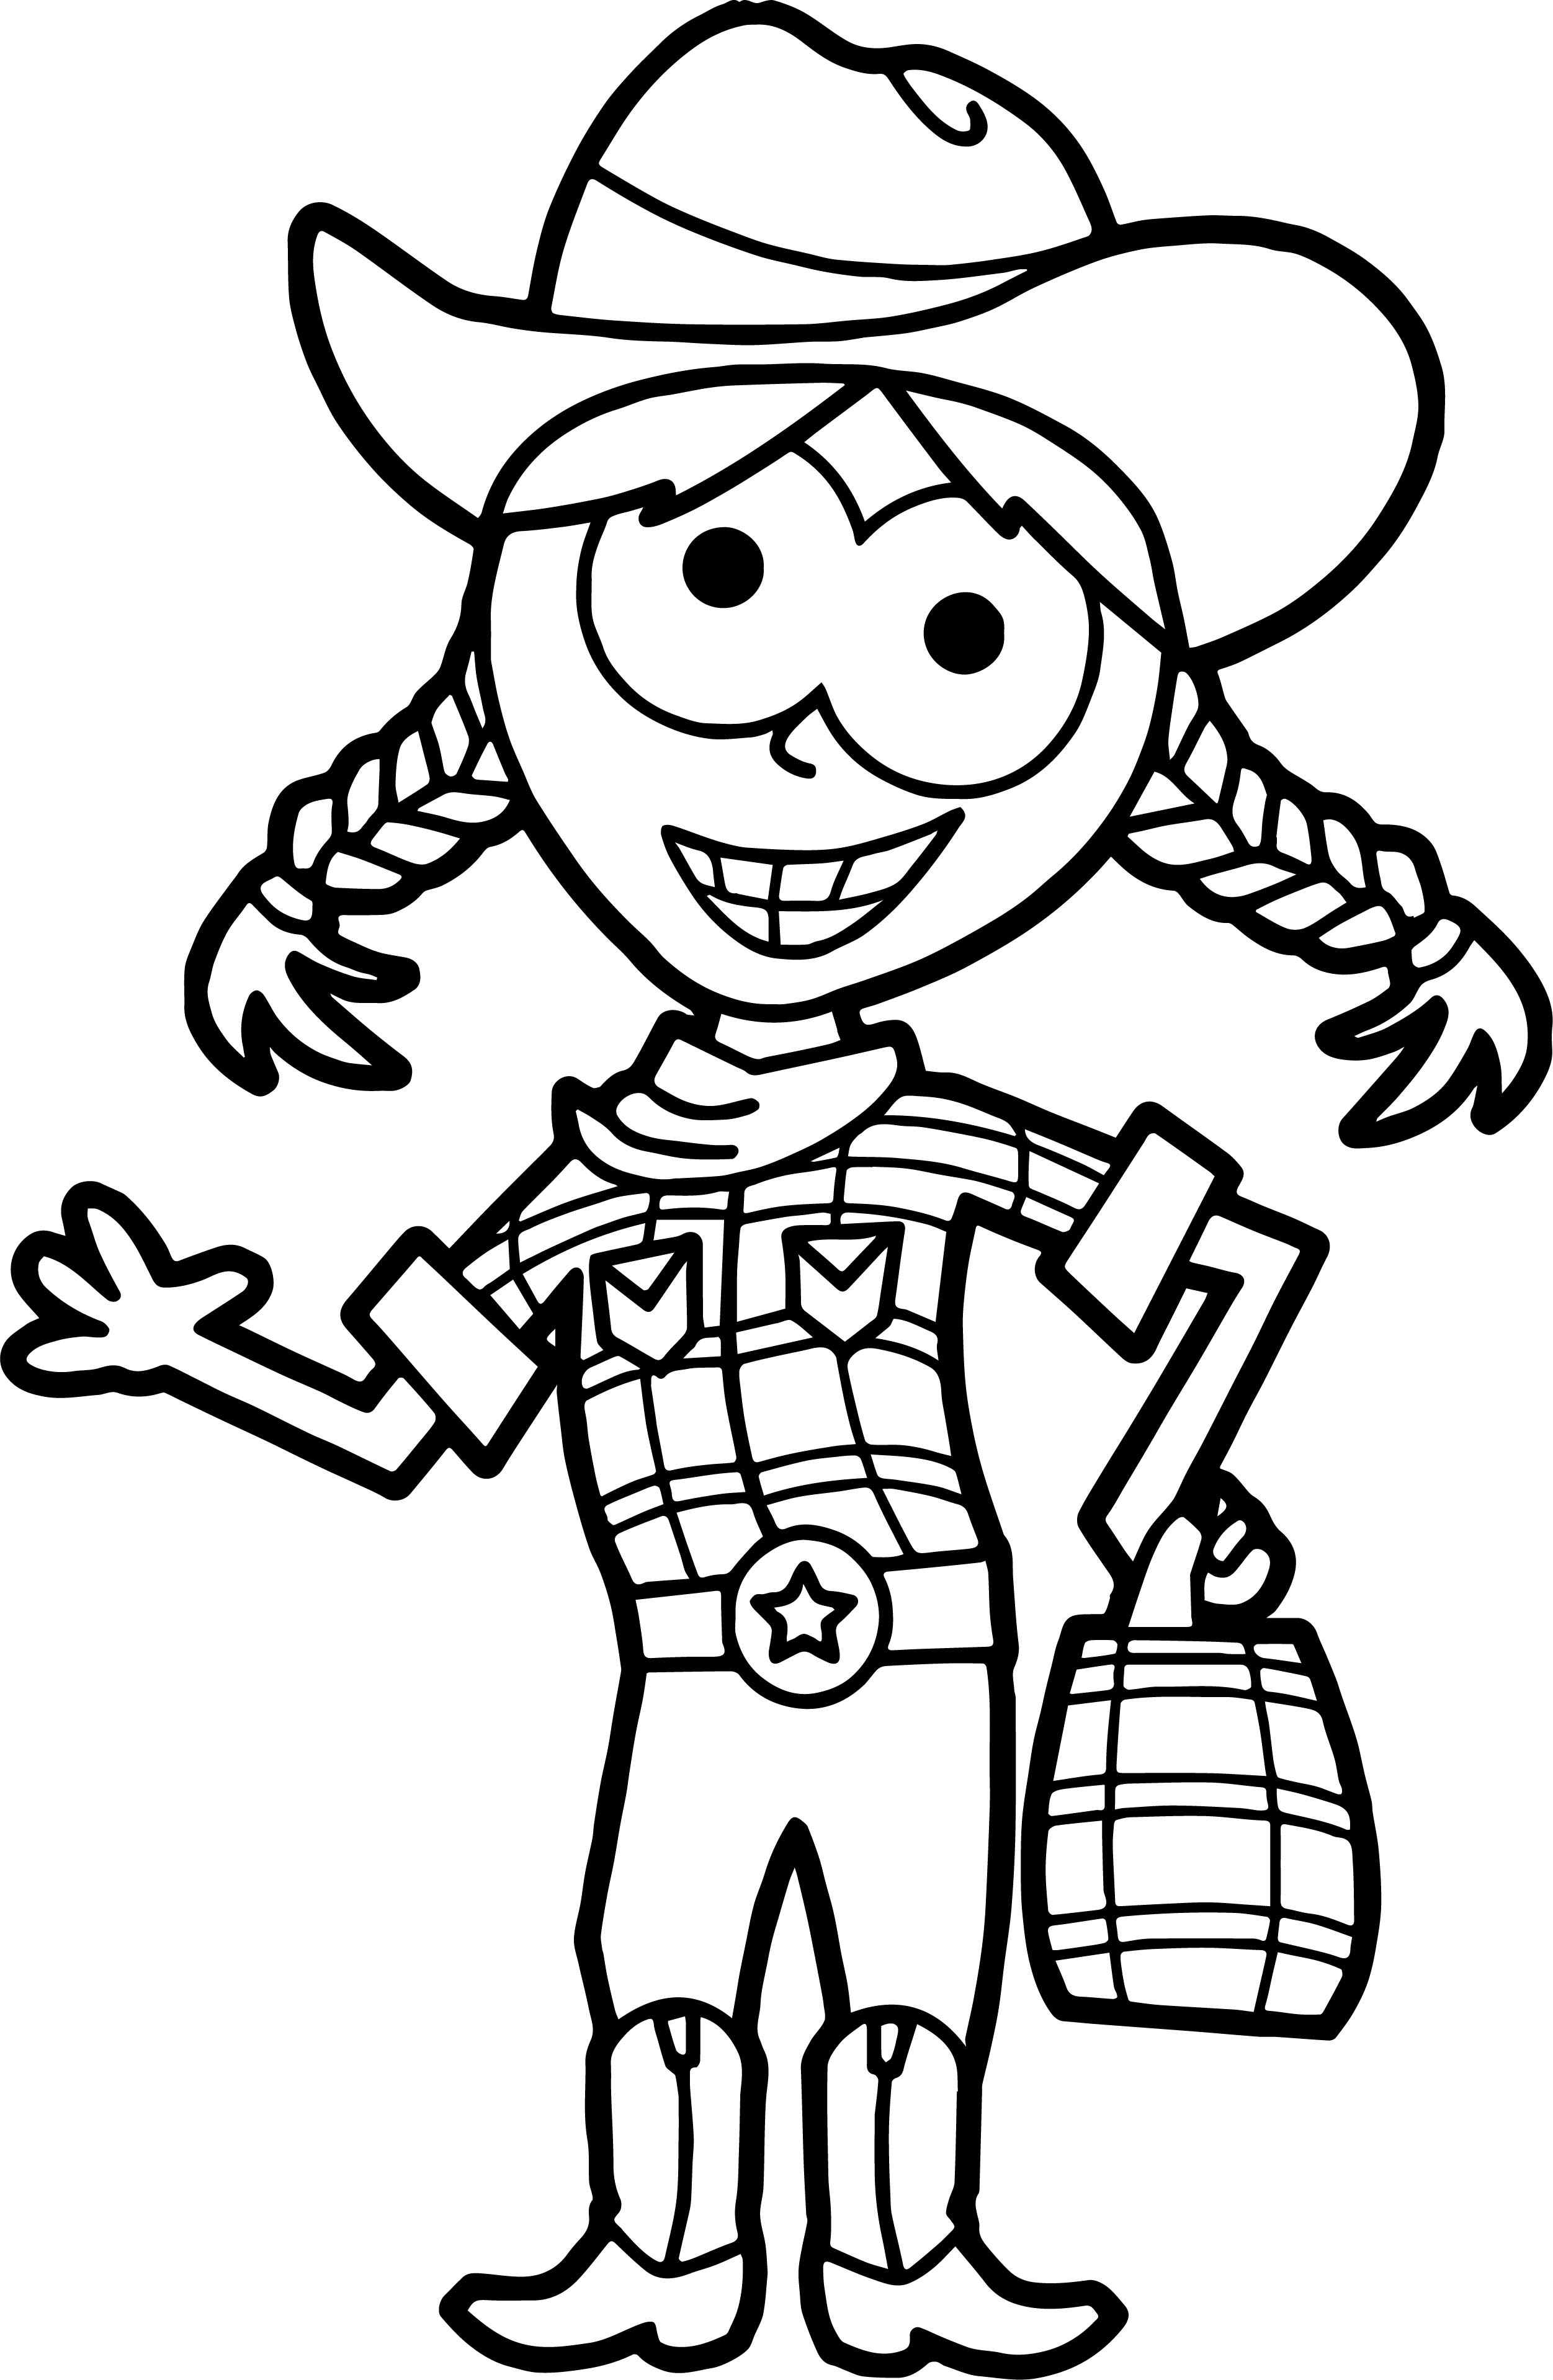 Home Free Halloween Trick Or Treat Cow Girl Free Coloring Page